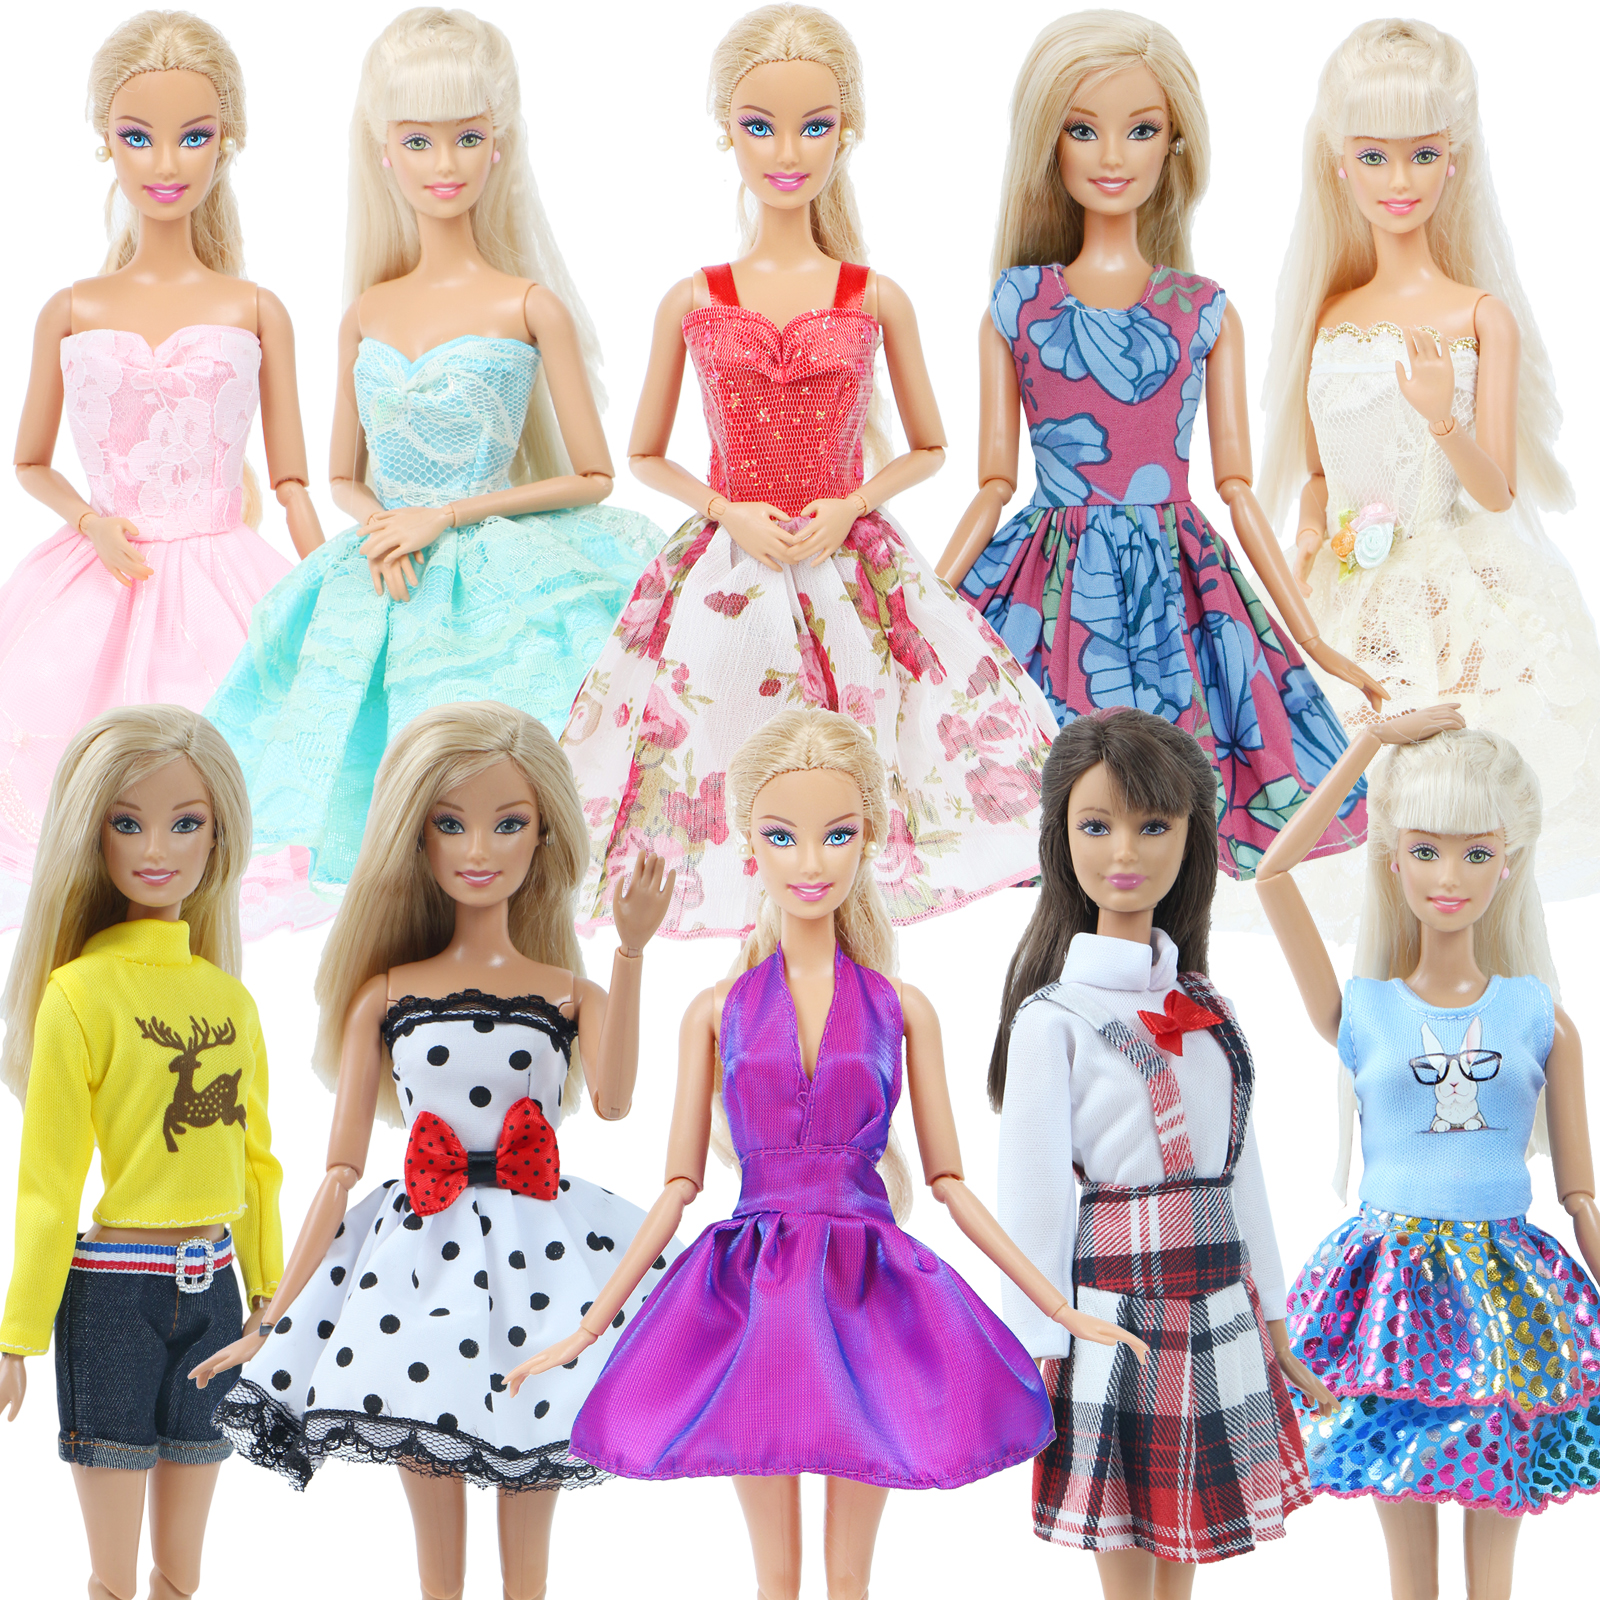 10 pcs//Lots Fashion Party Daily Wear Dress Outfits Clothes For  Doll Toys